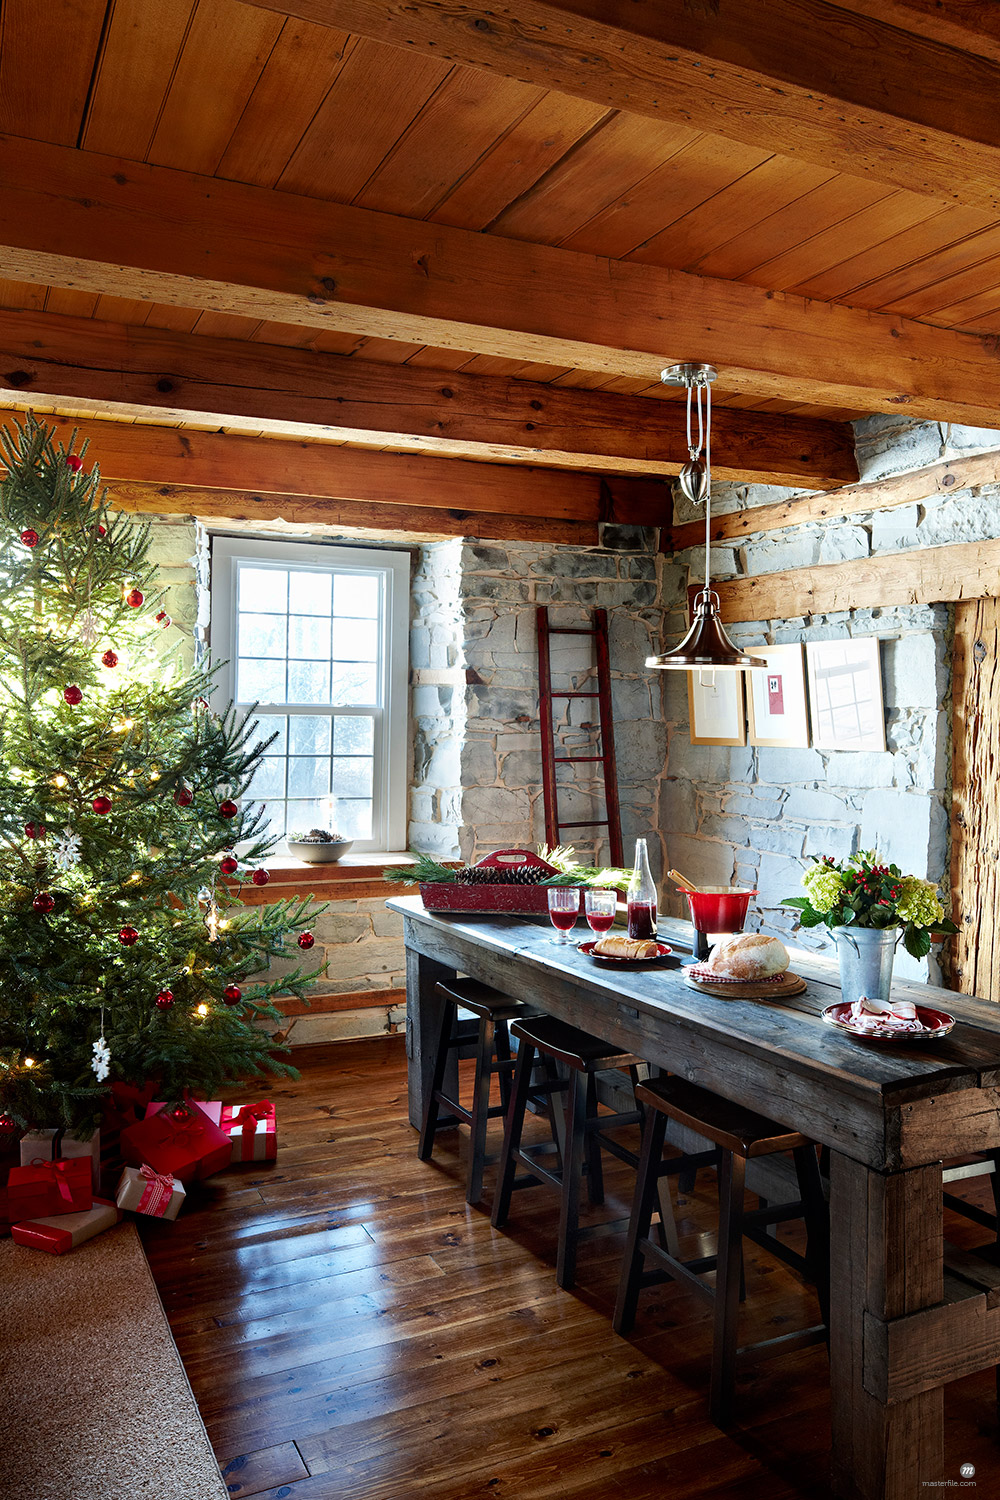 Room Decorated For Christmas © Yvonne Duivenvoorden / Masterfile